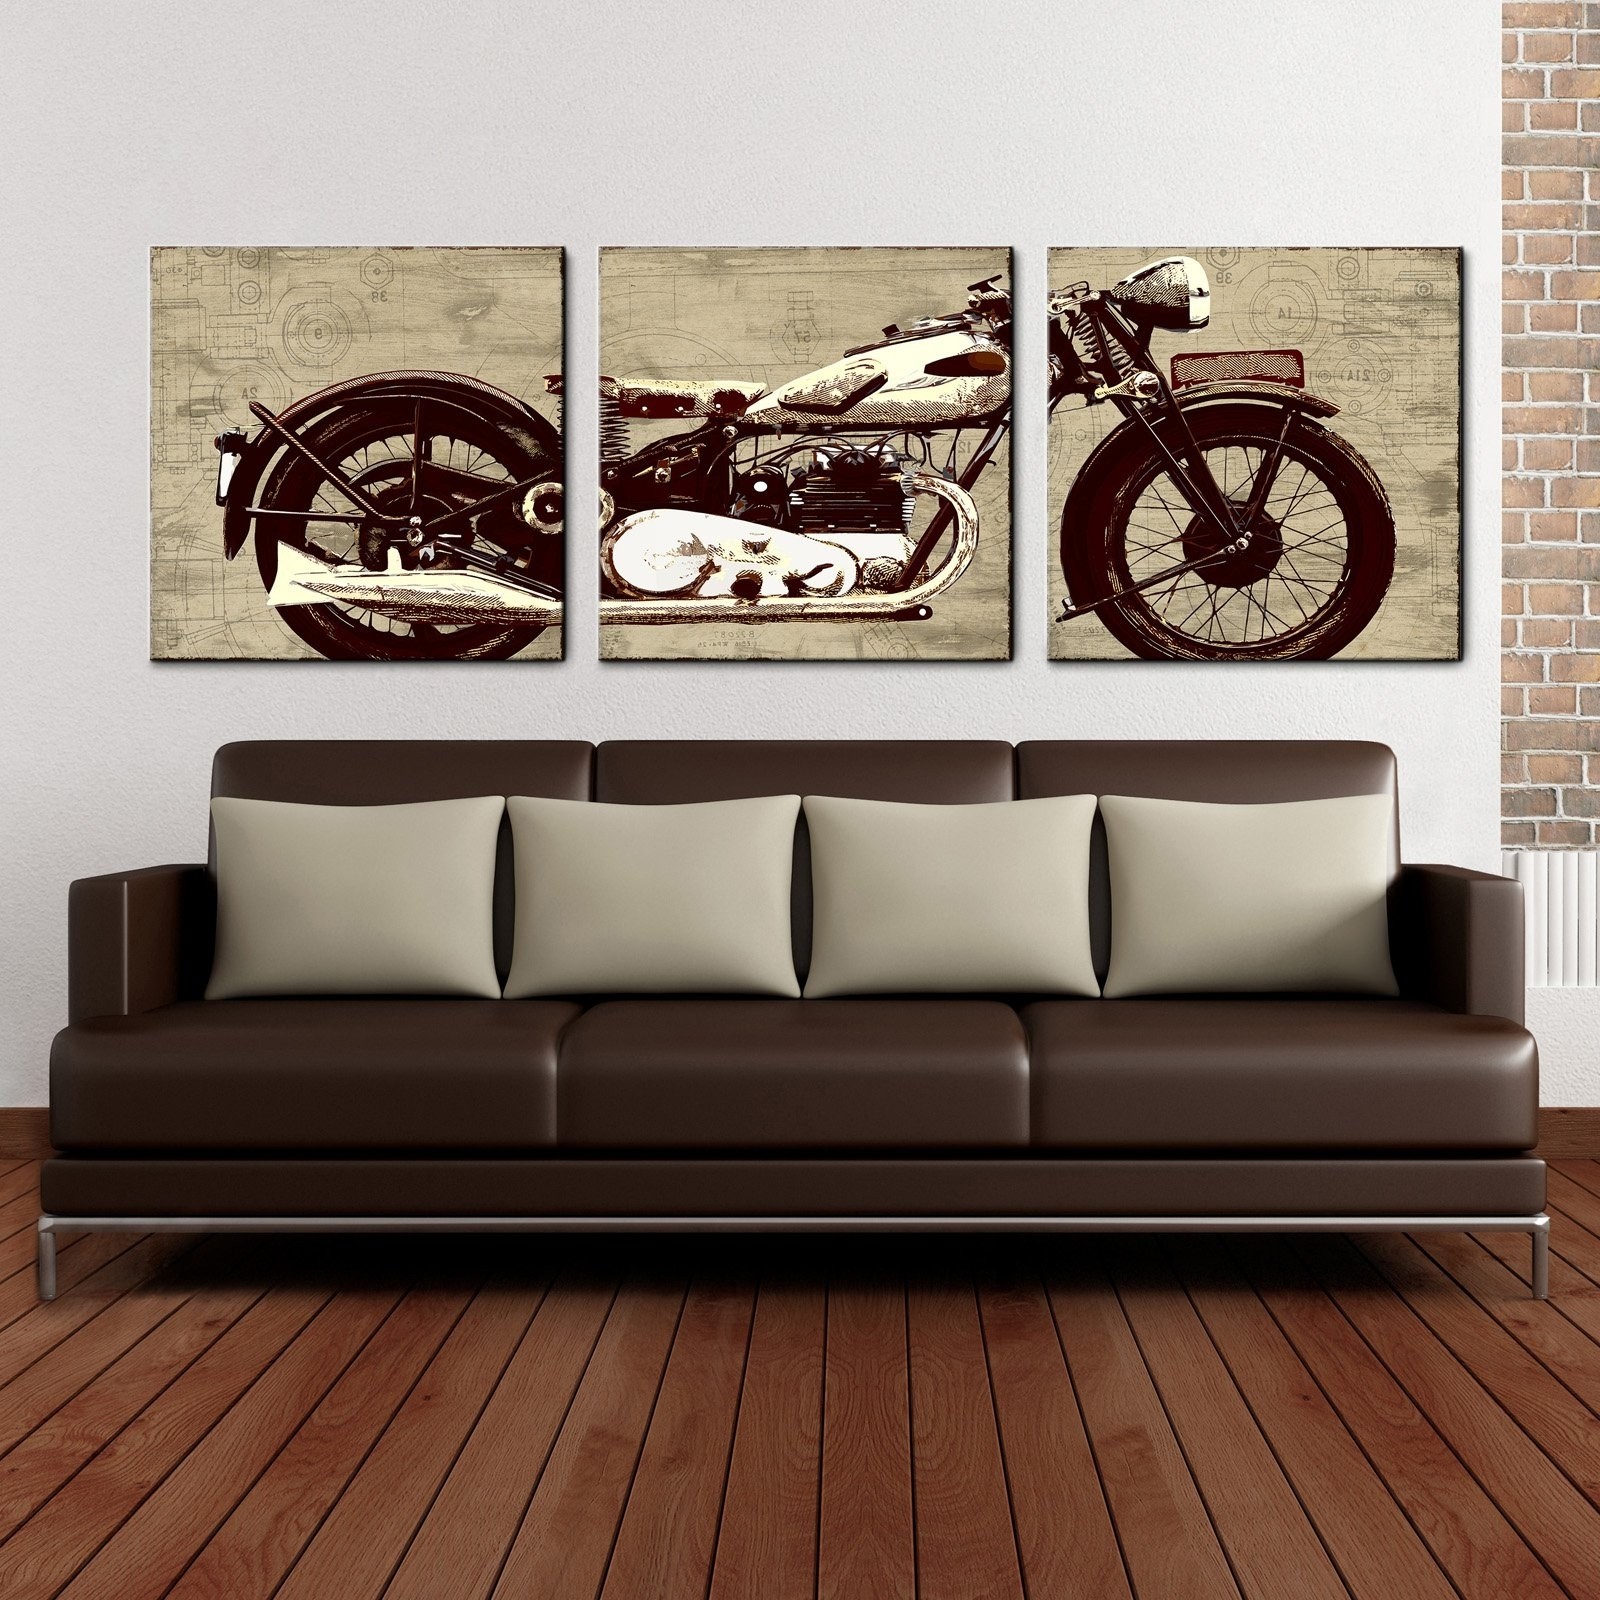 Motorcycle Wall Art Inside Best And Newest Motorcycle 24 X 72 Canvas Art Print Triptych – Walmart (View 10 of 20)